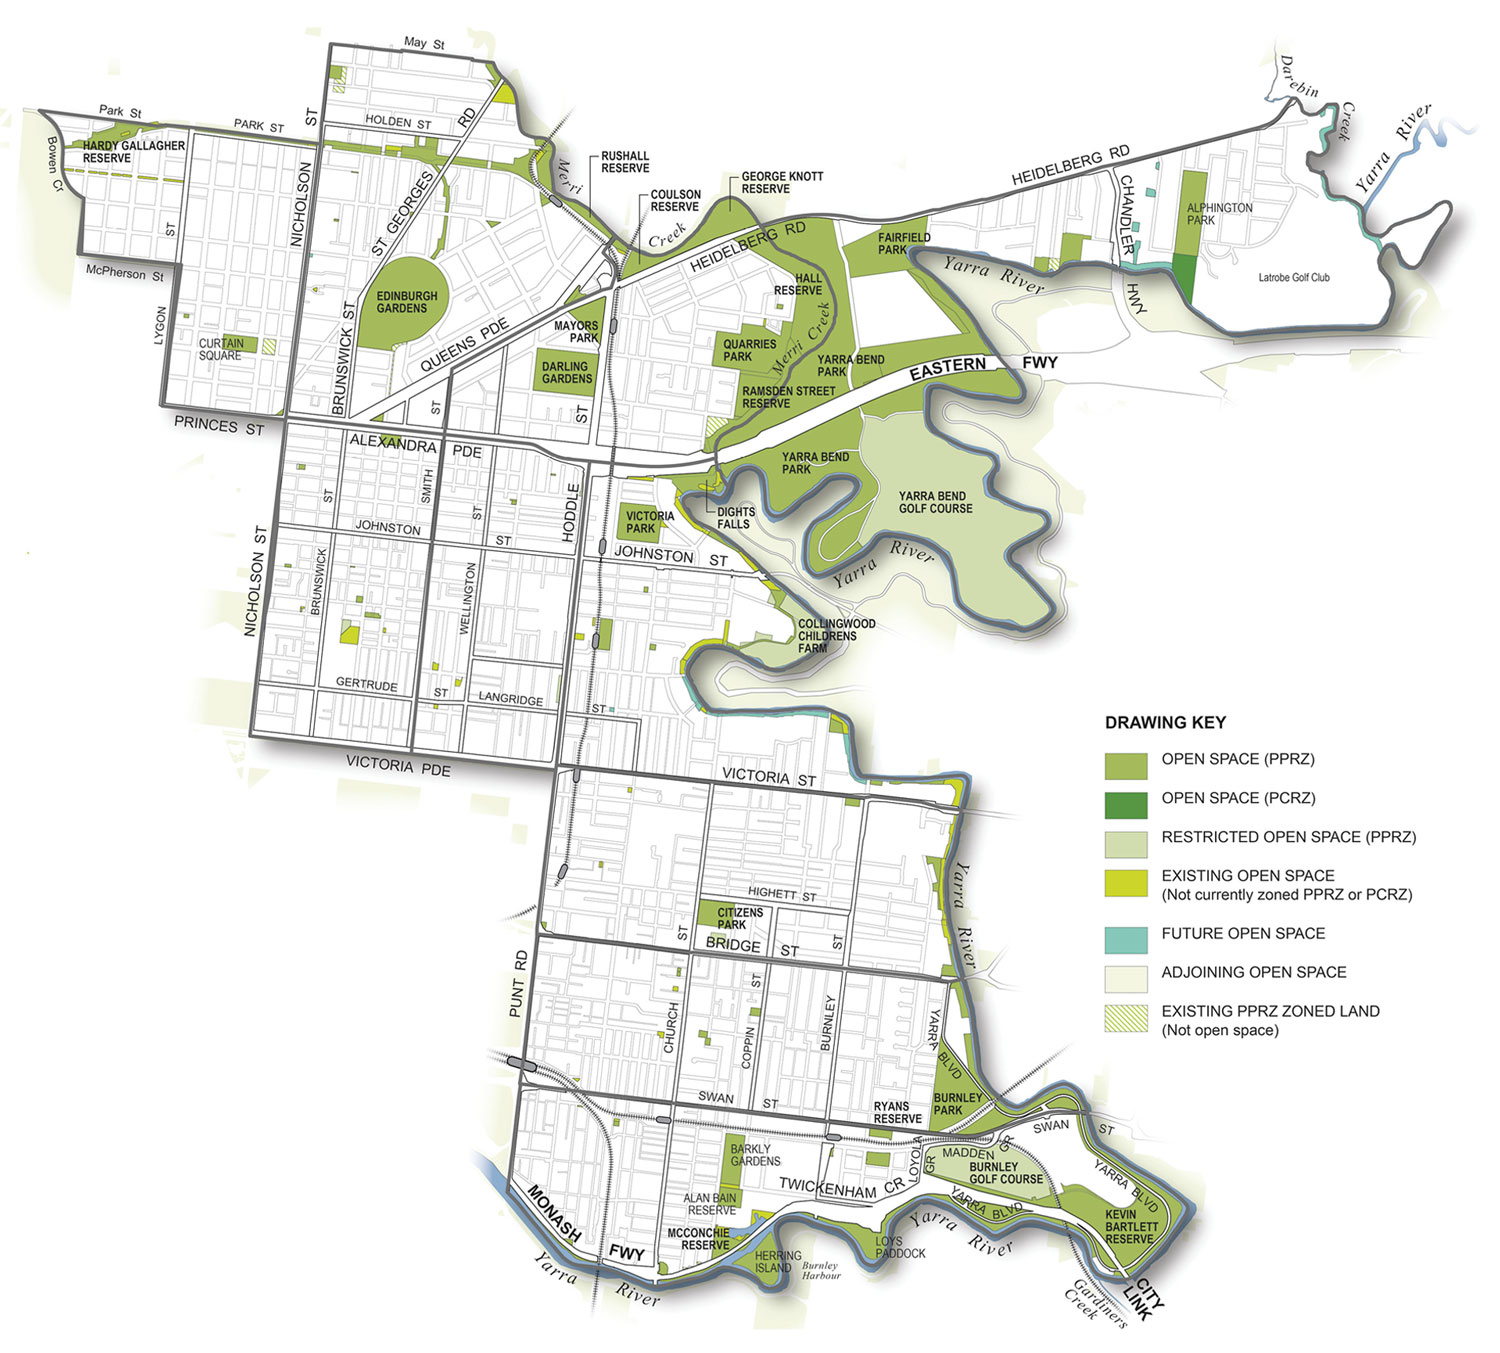 Existing open space in Yarra